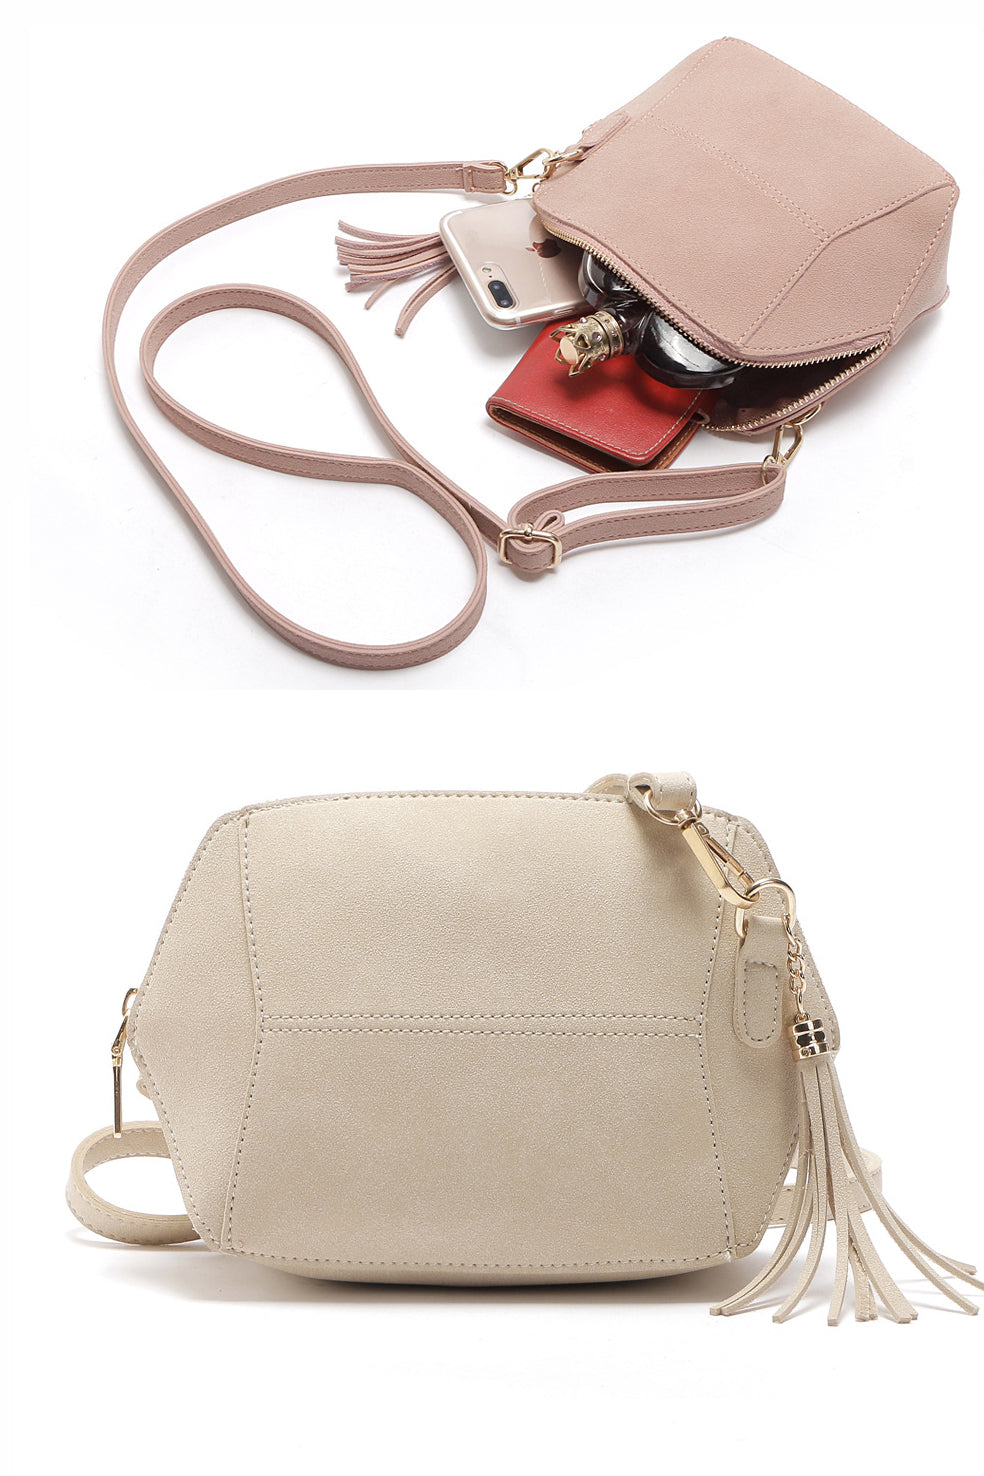 Playchip - Cross-body In Ten Colors - La Splendour